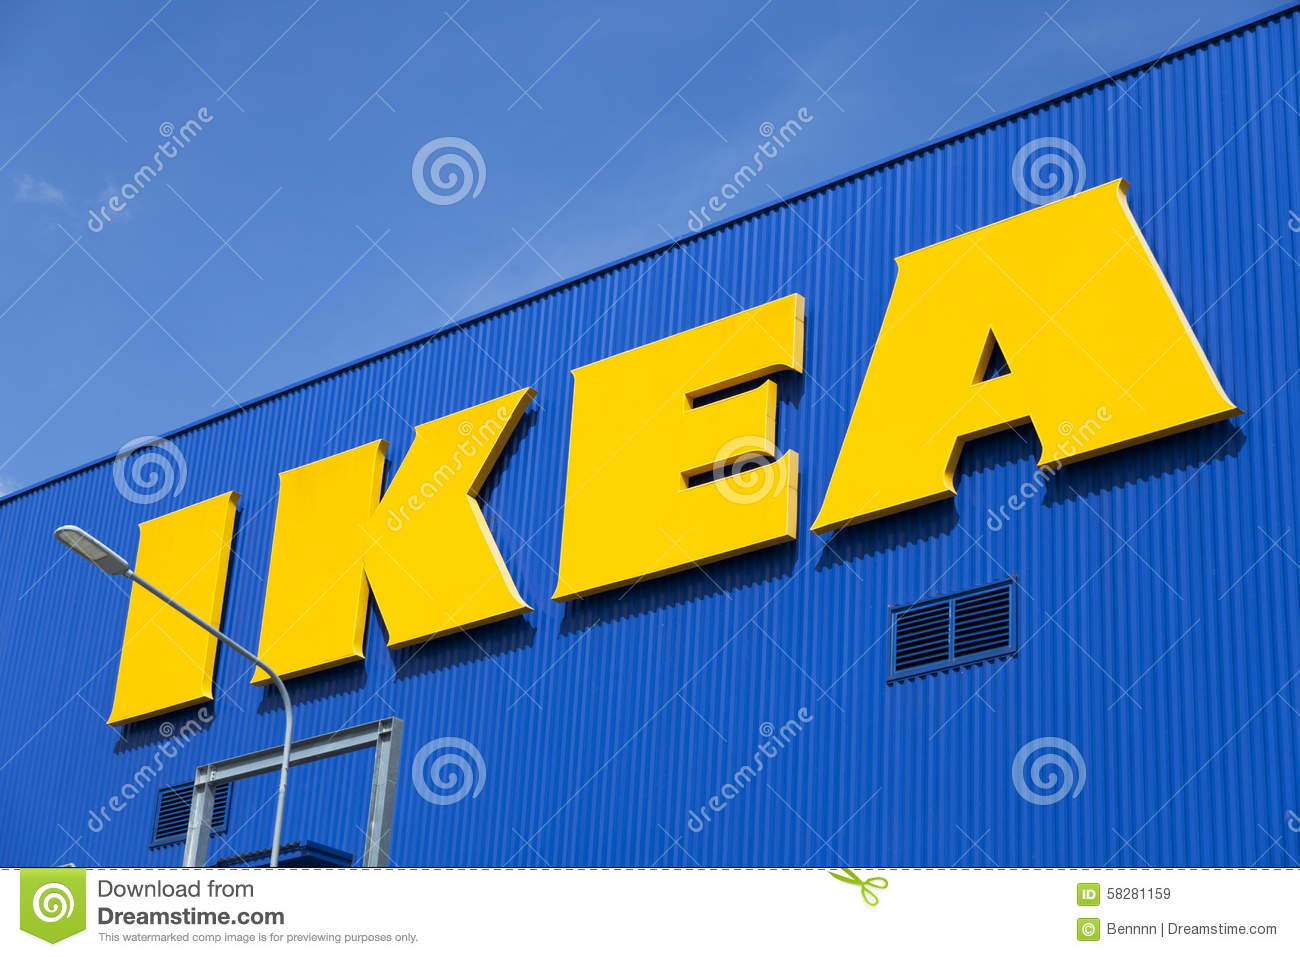 The ikea store editorial stock image image 58281159 for Ikea stehhocker